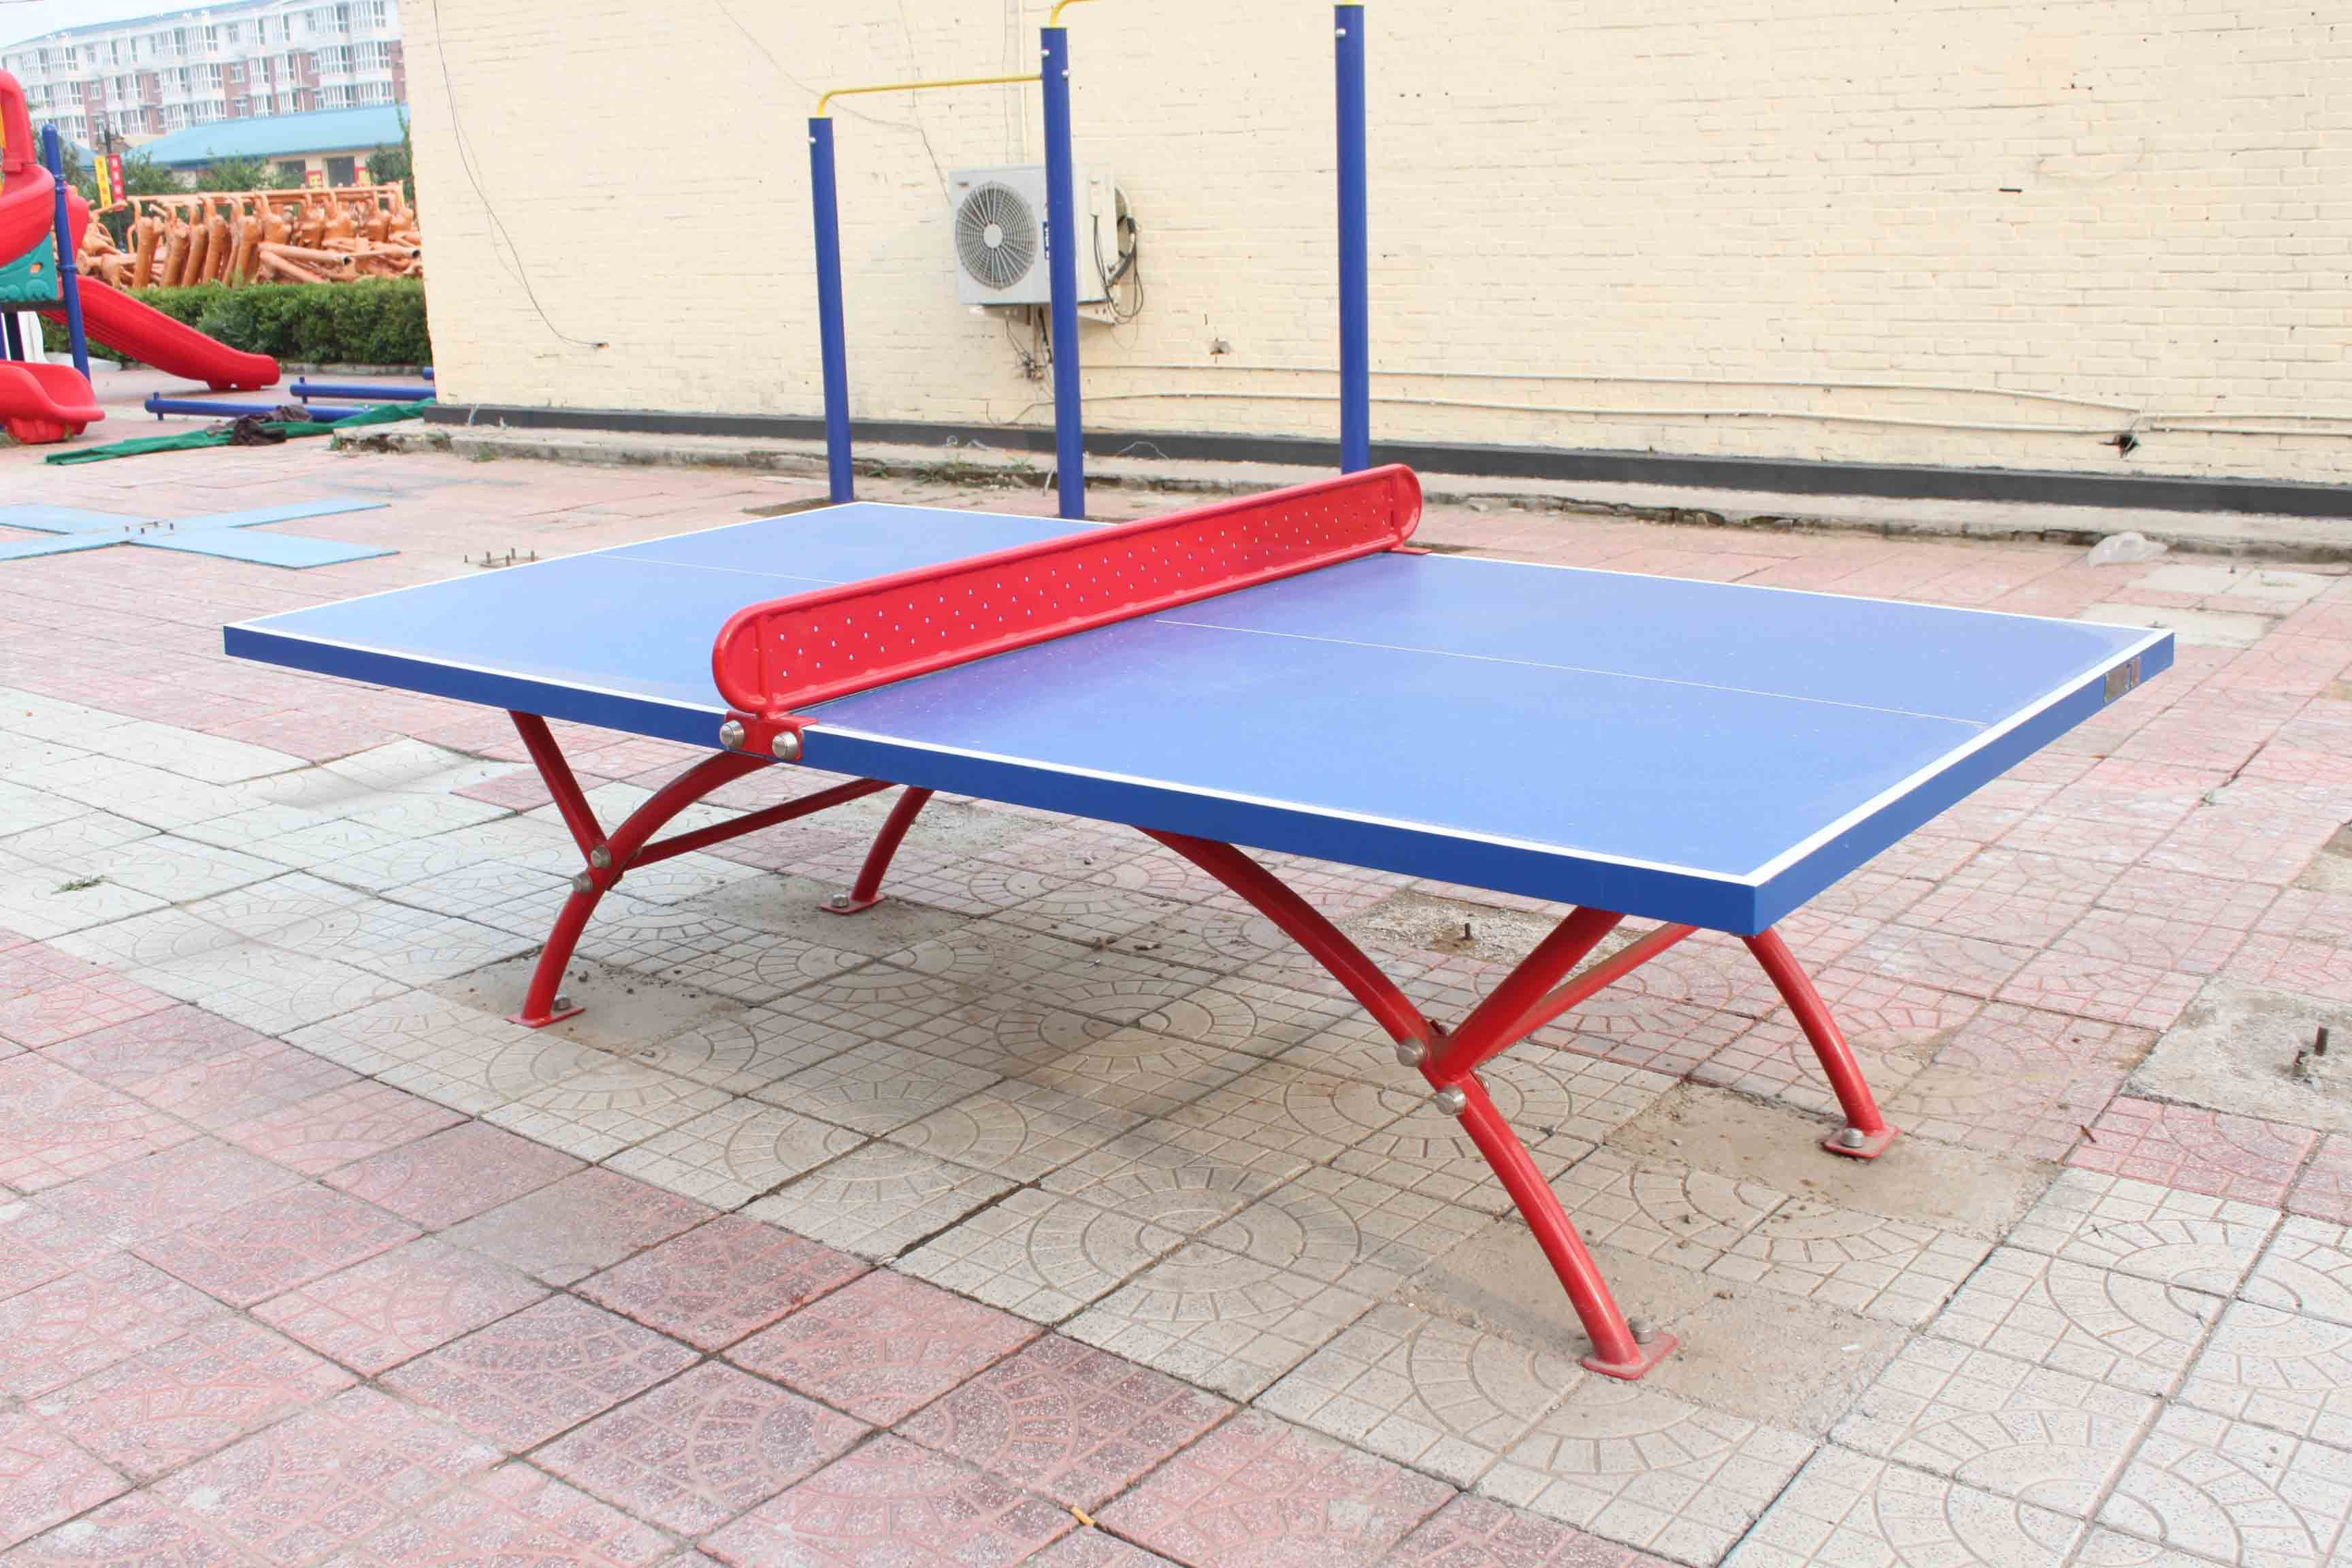 Jiamei High Quality Outdoor Fitness Equipment  elaine@xdjiameisports.com